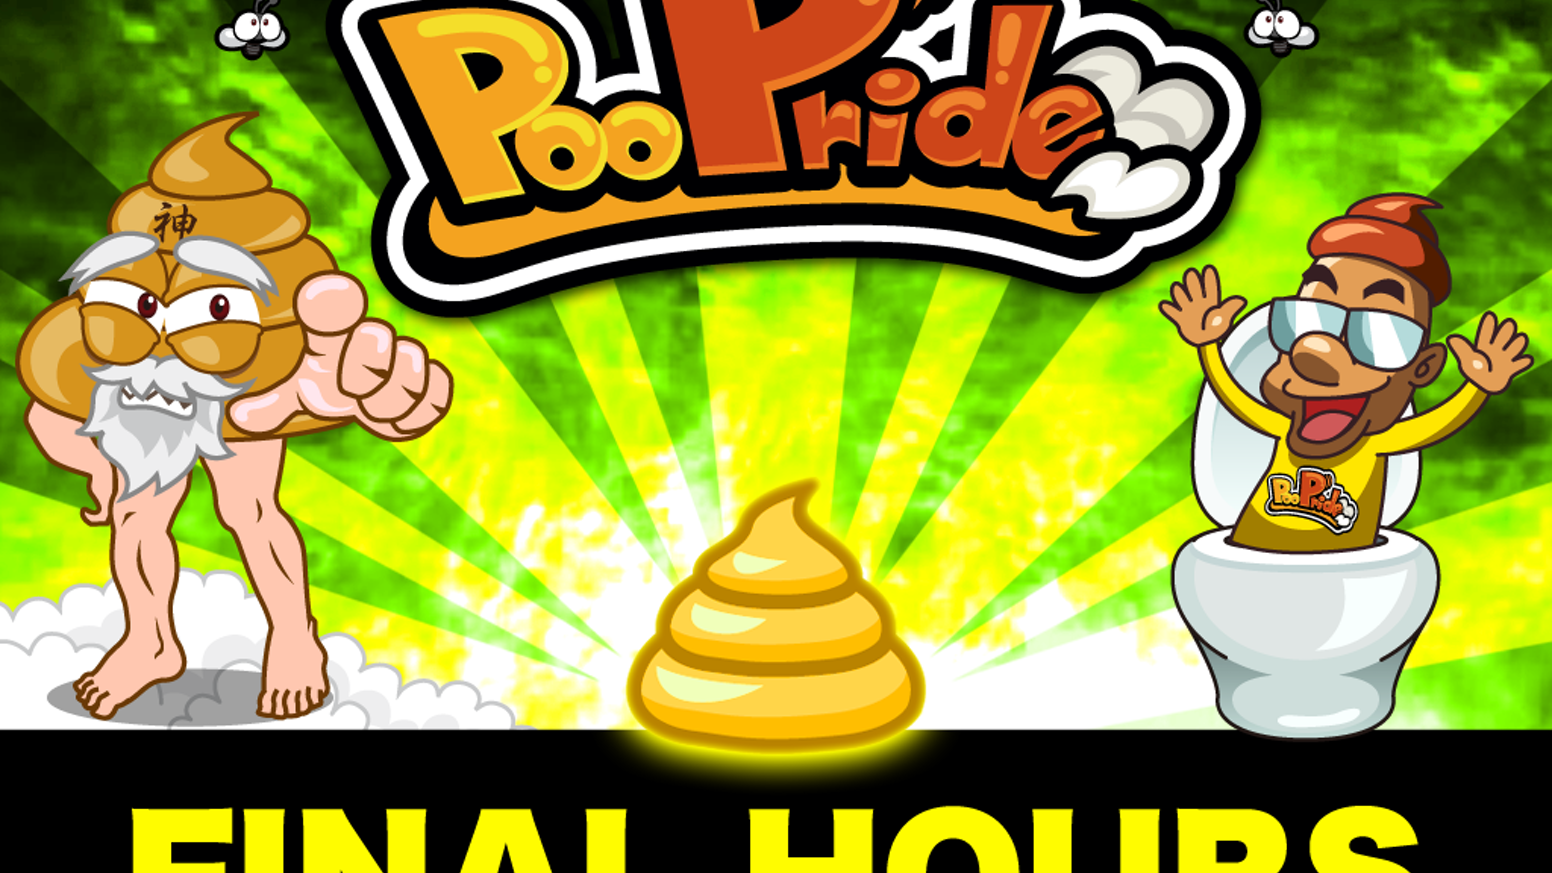 We are developing the best poop indie game ever! Can you defeat The God of Poo?